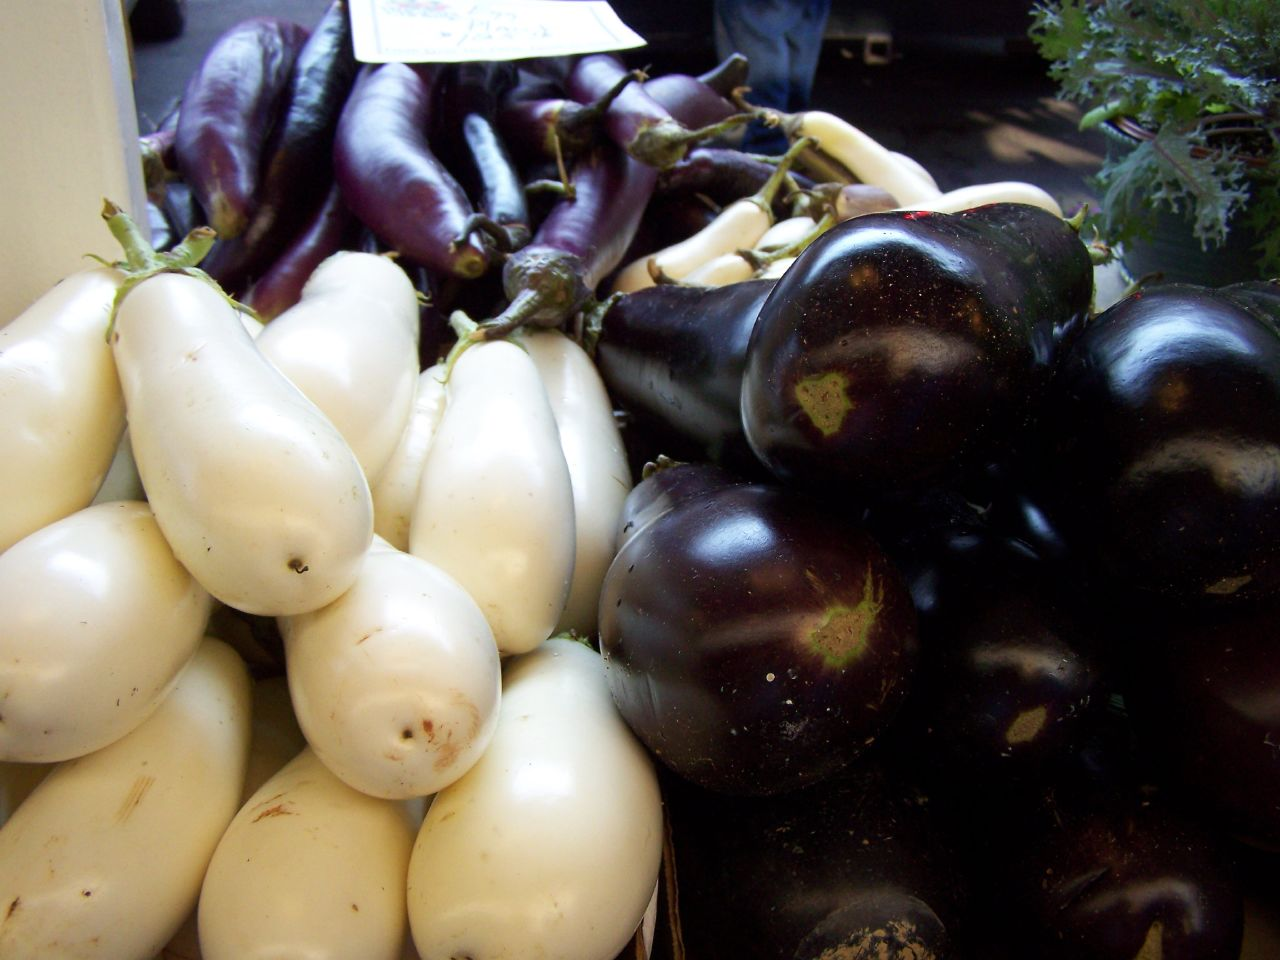 A whole bunch of lovely delicious aubergines